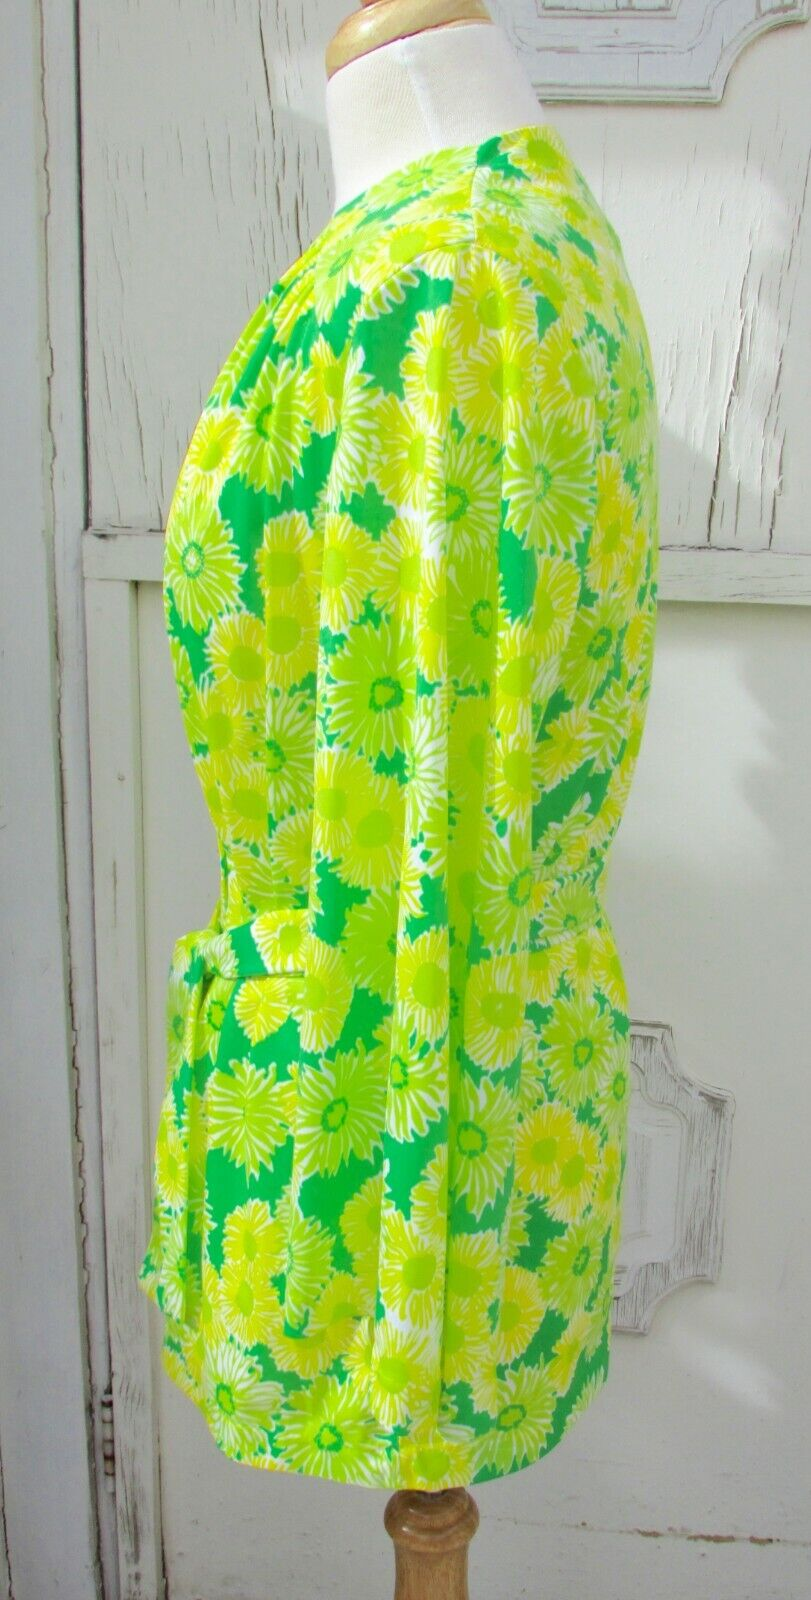 GREEN NEON VTG 70's Swimwear Cover Up-Perfection … - image 3